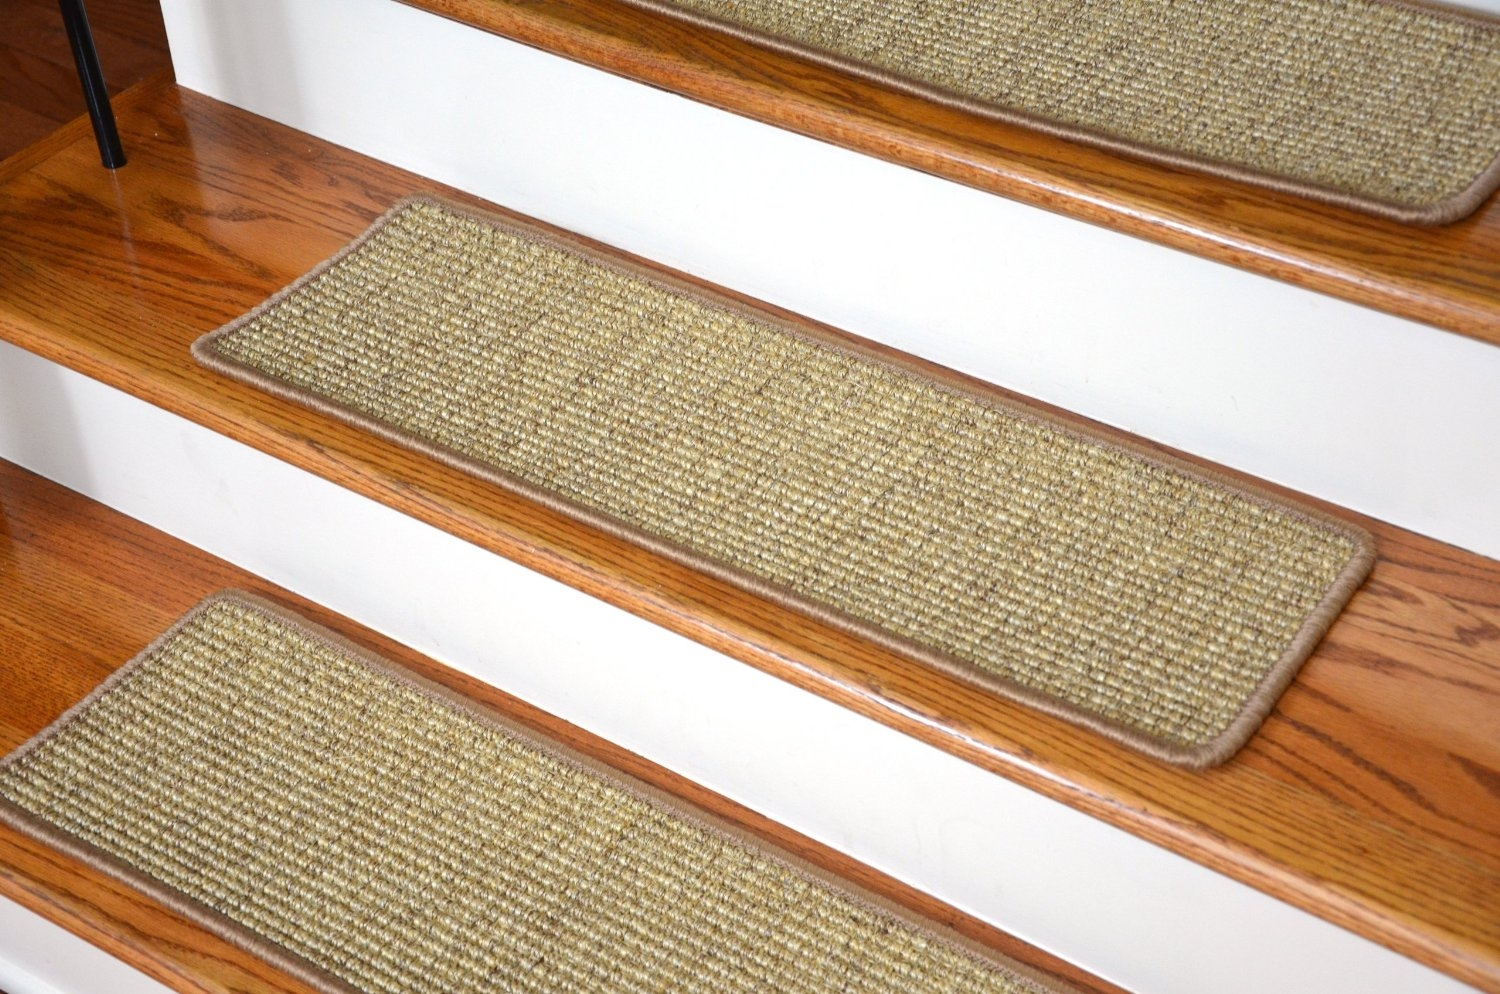 Easy Installing Carpet Stair Treads Stair Design Ideas Throughout Carpet Step Covers For Stairs (#8 of 20)